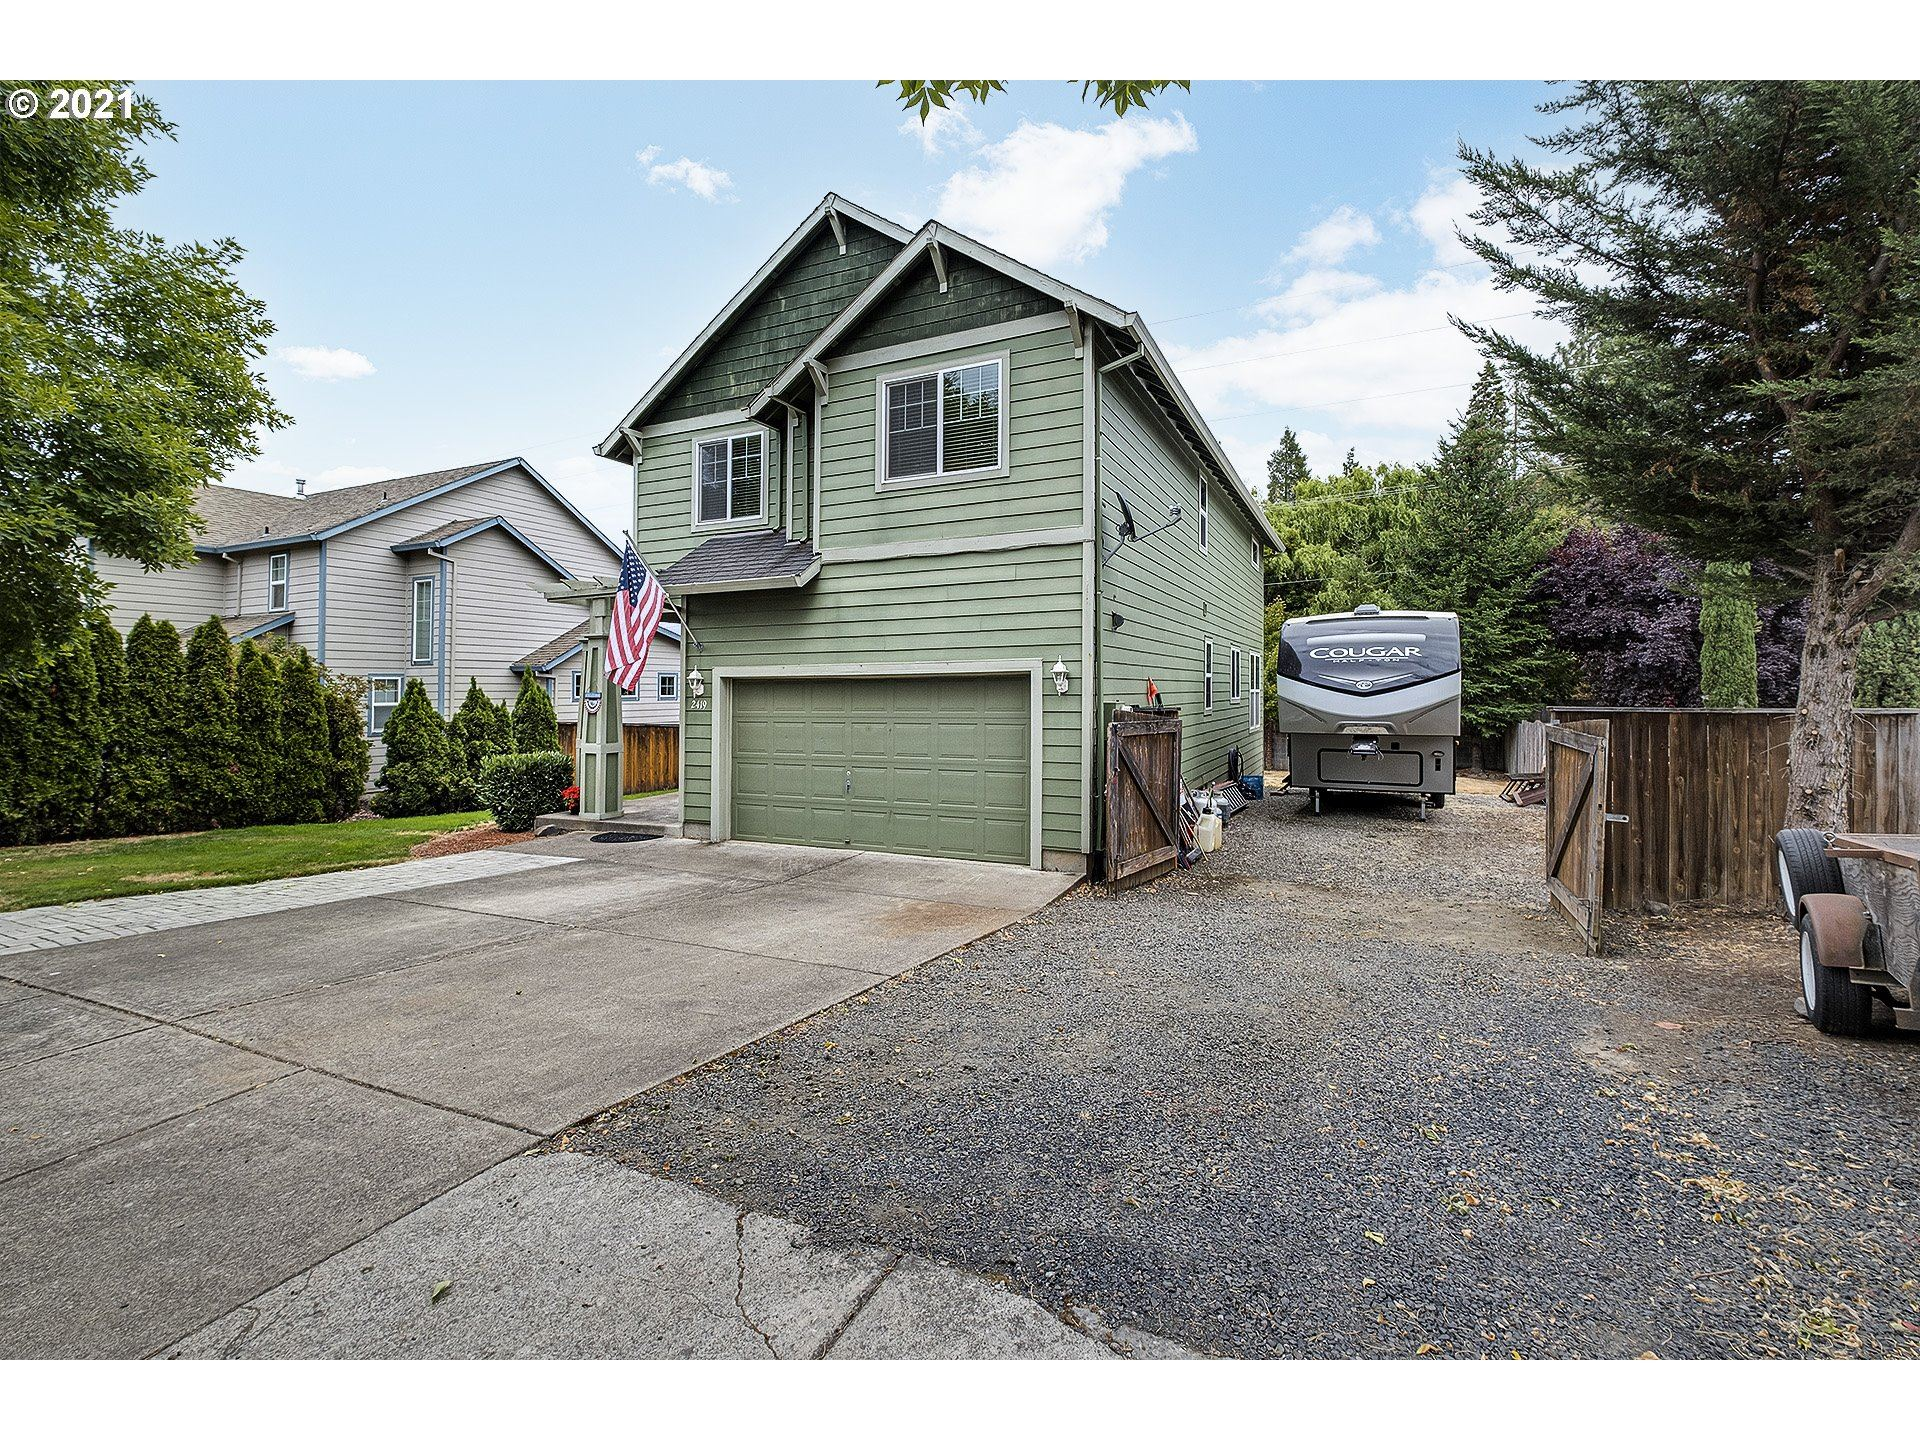 2419 GARDENIA ST, Forest Grove, OR 97116 - MLS#: 21384679